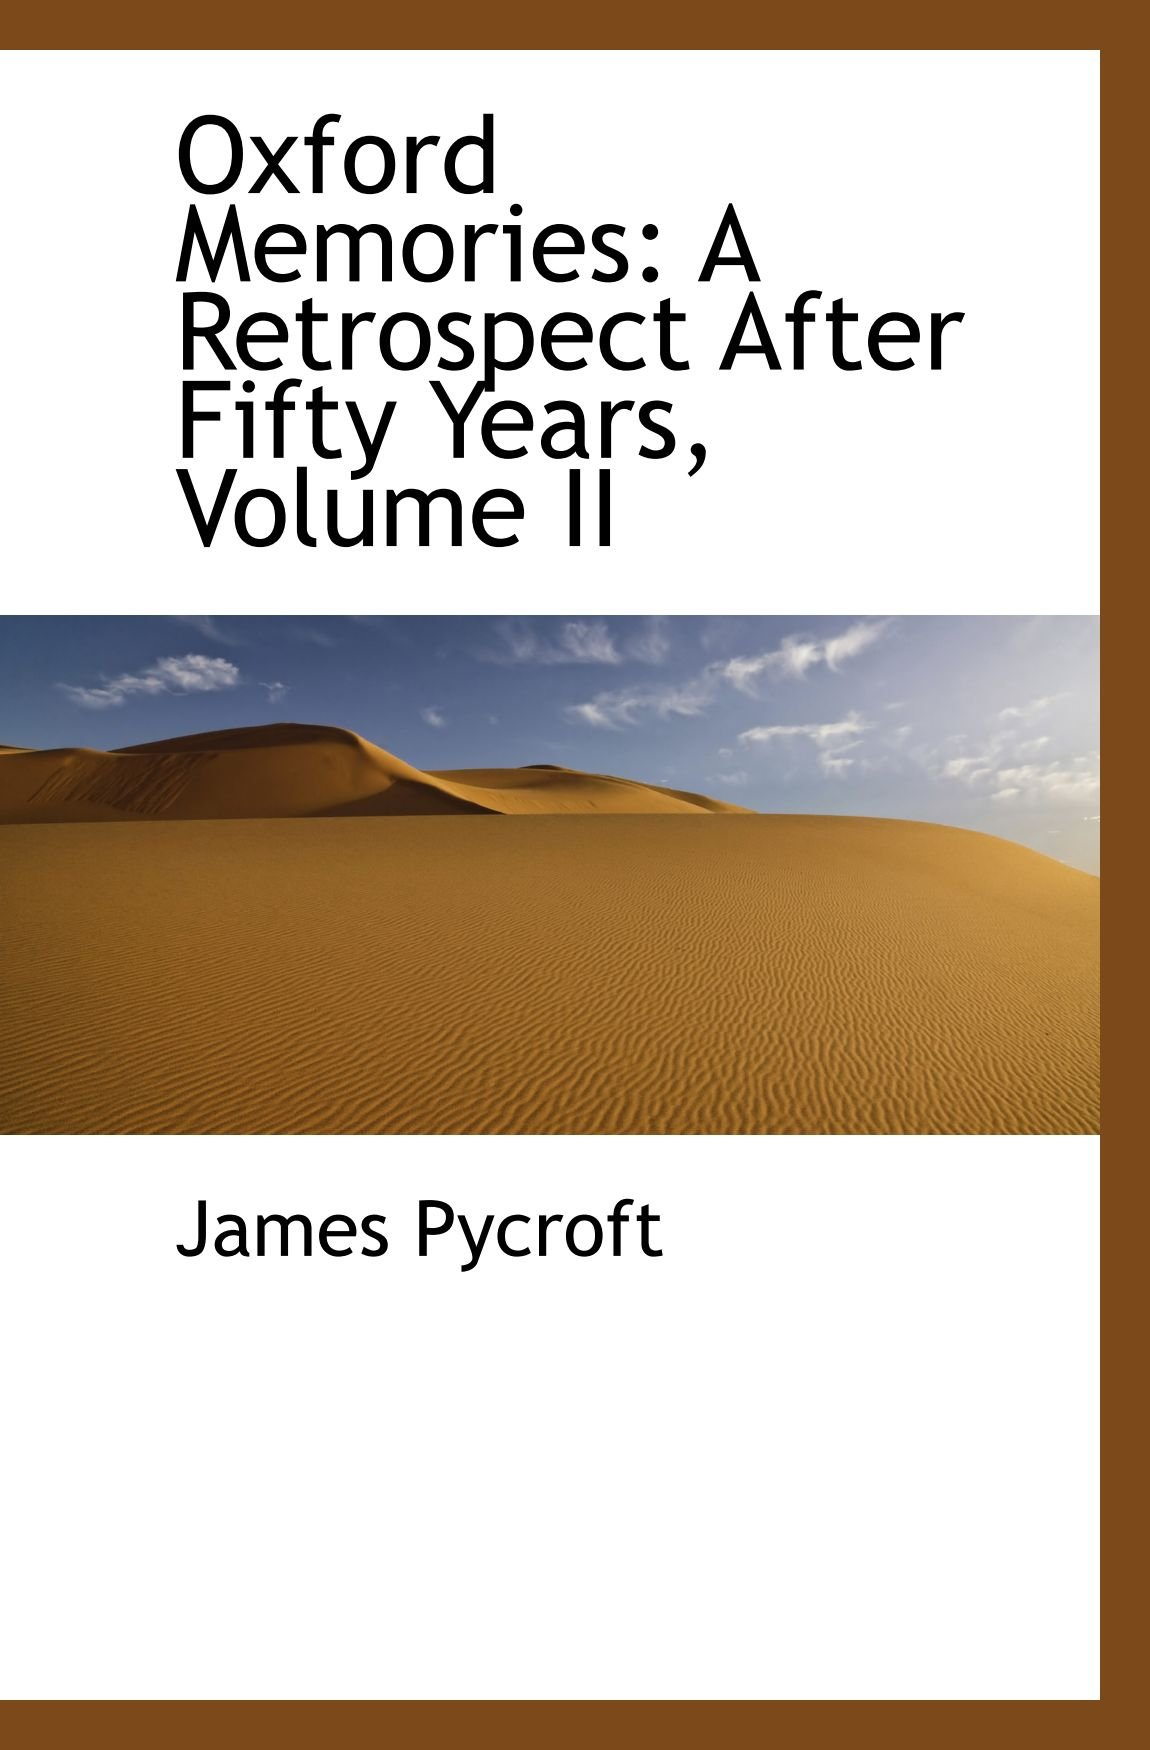 Oxford Memories: A Retrospect After Fifty Years, Volume II pdf